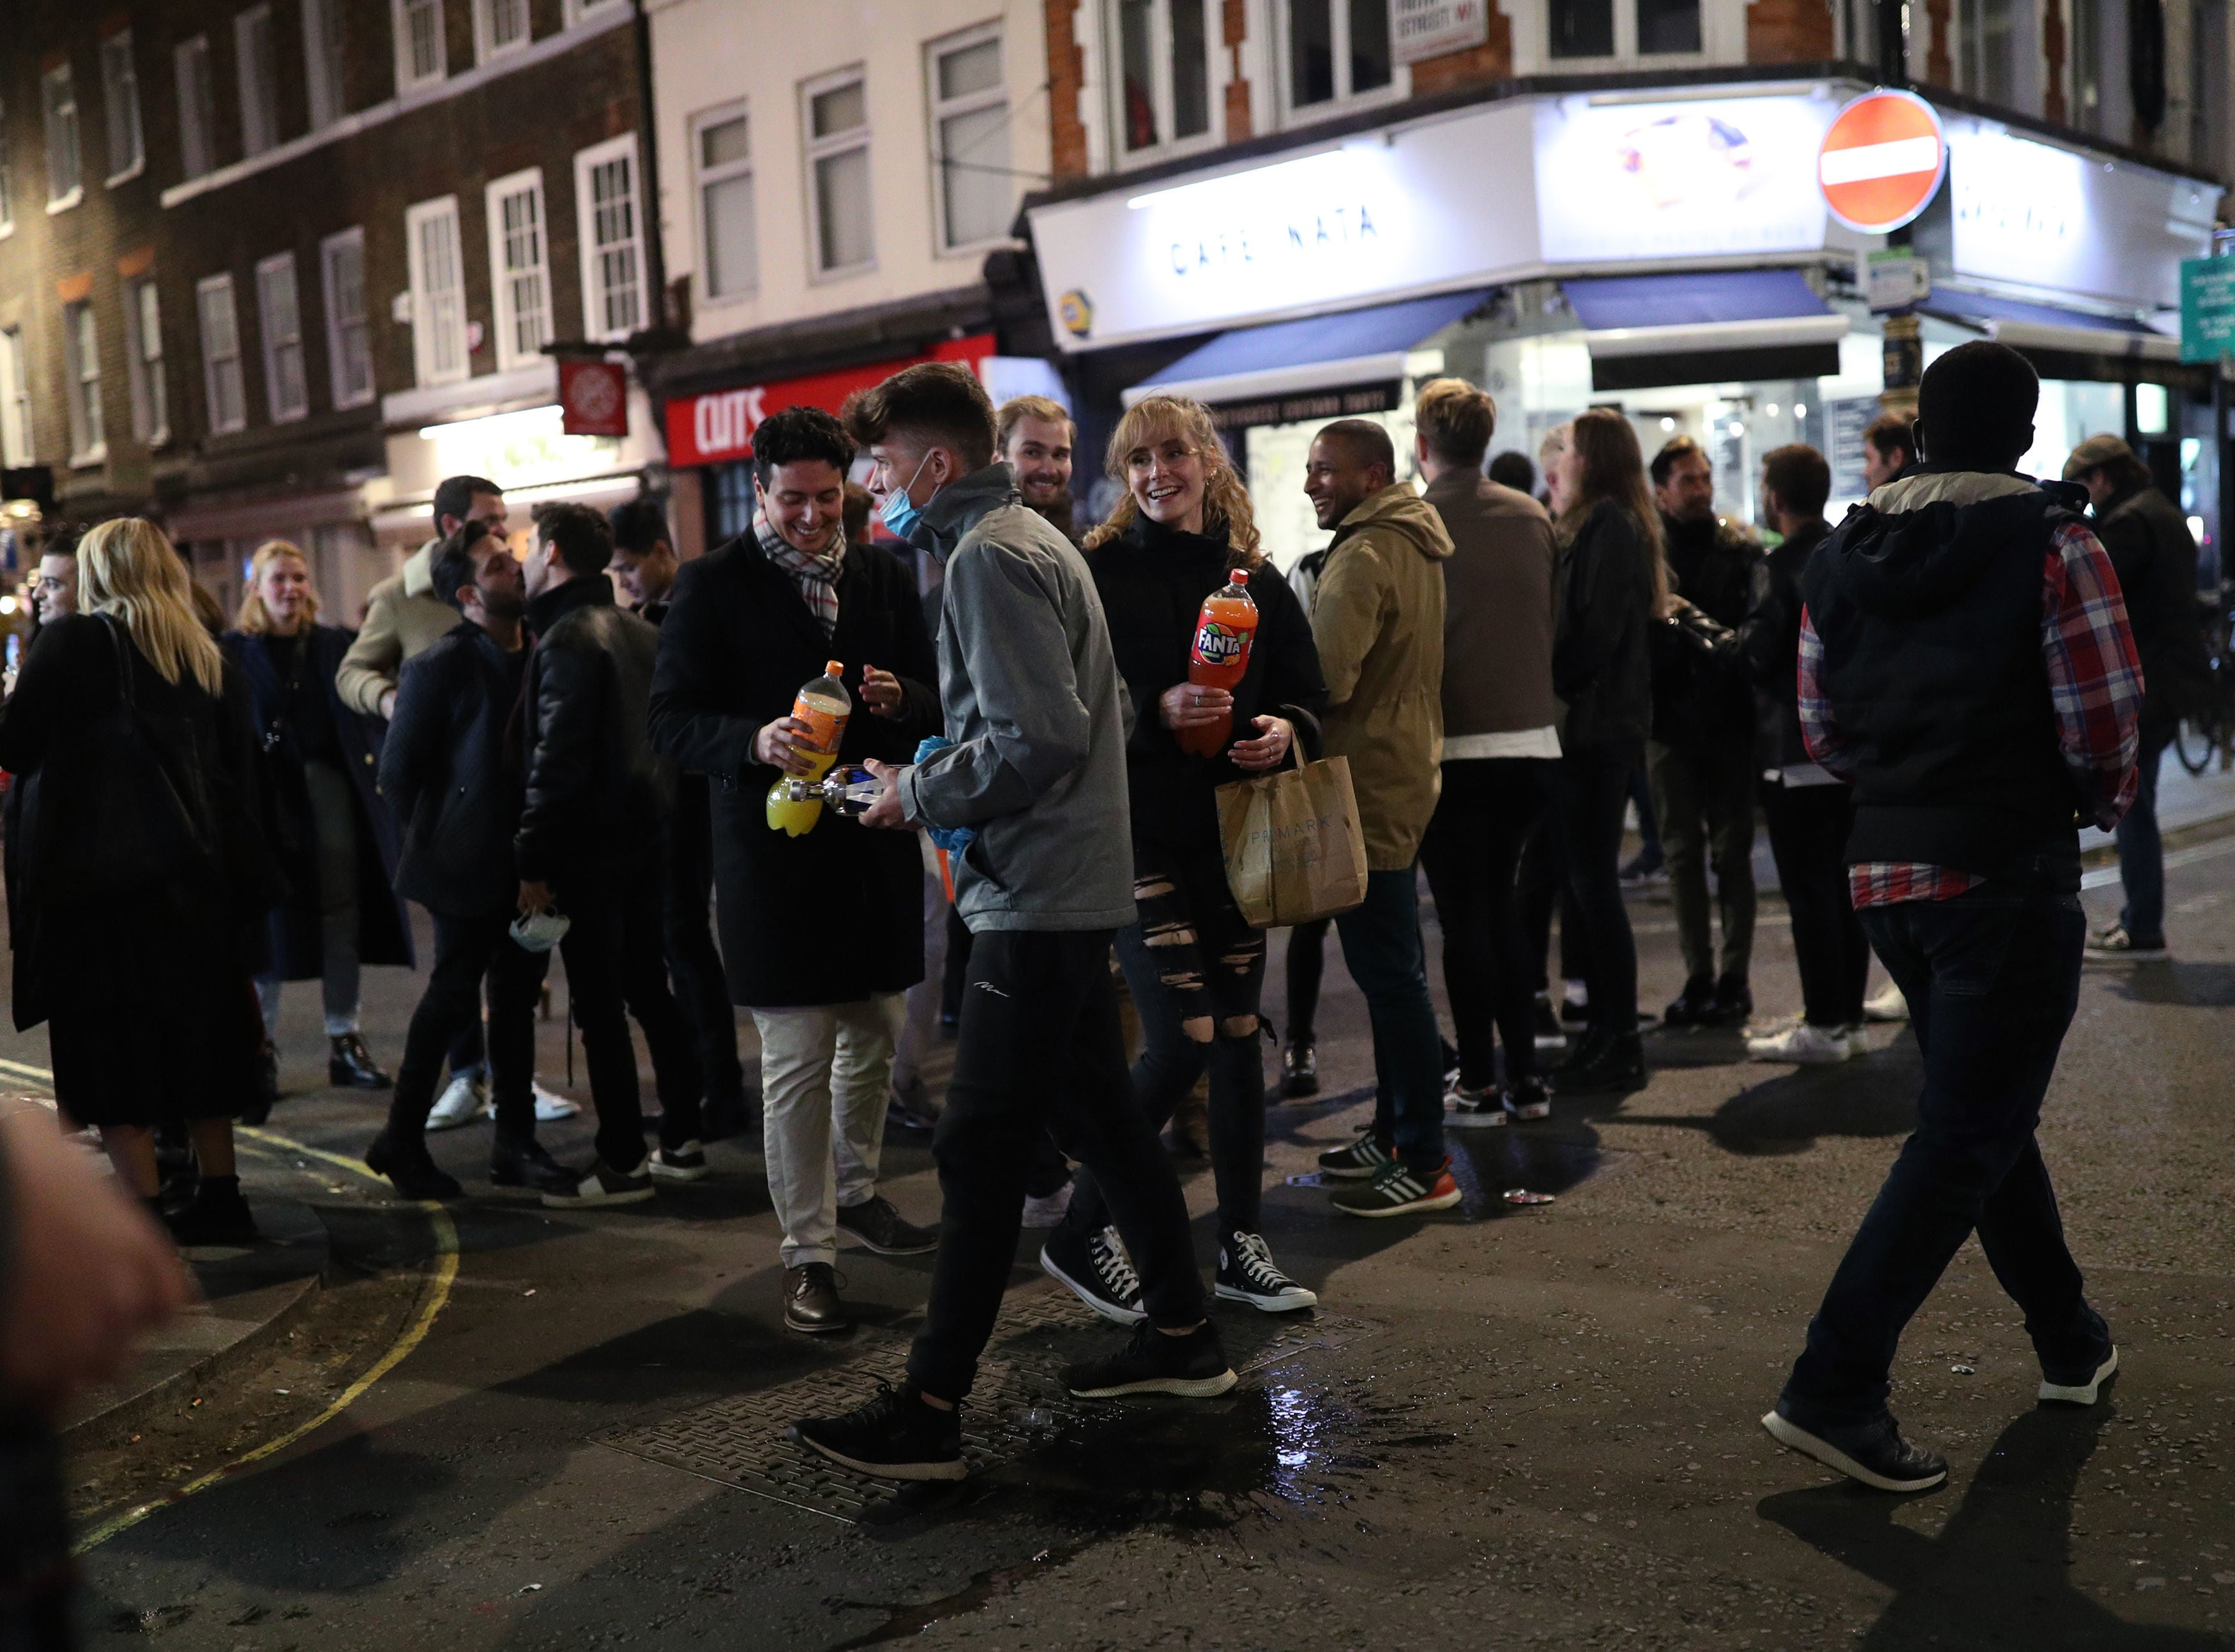 Pressure mounts on government to review 'shambolic' 10pm curfew after drinkers crowd streets at closing time | The Independent